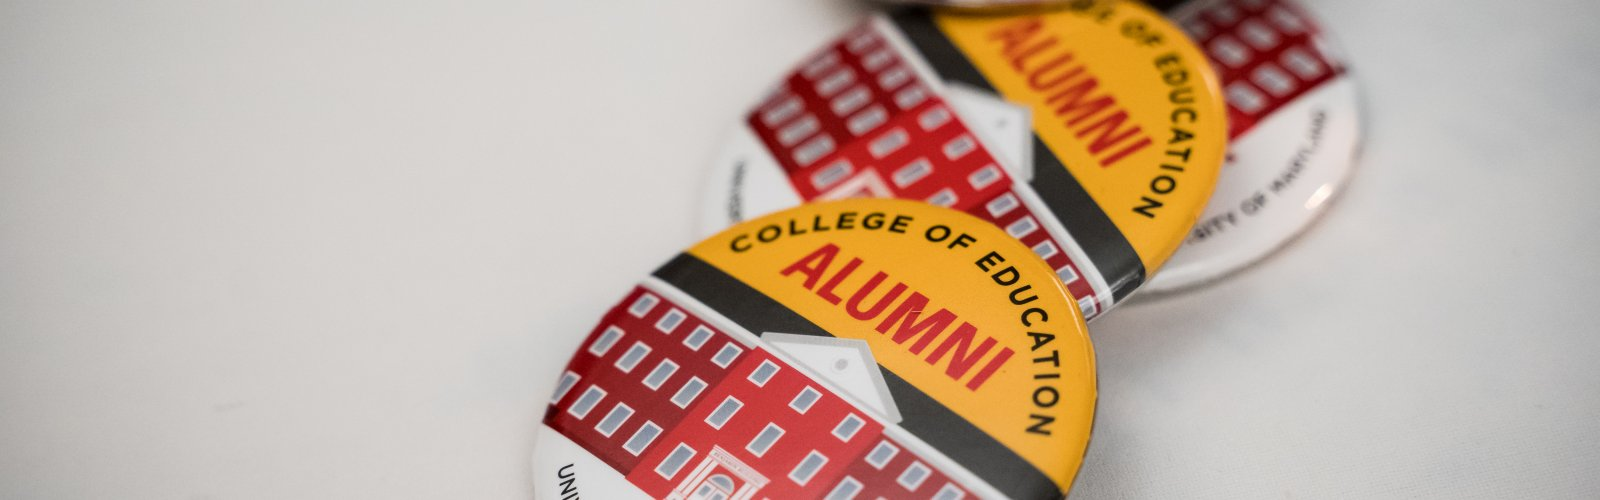 College of Education alumni buttons